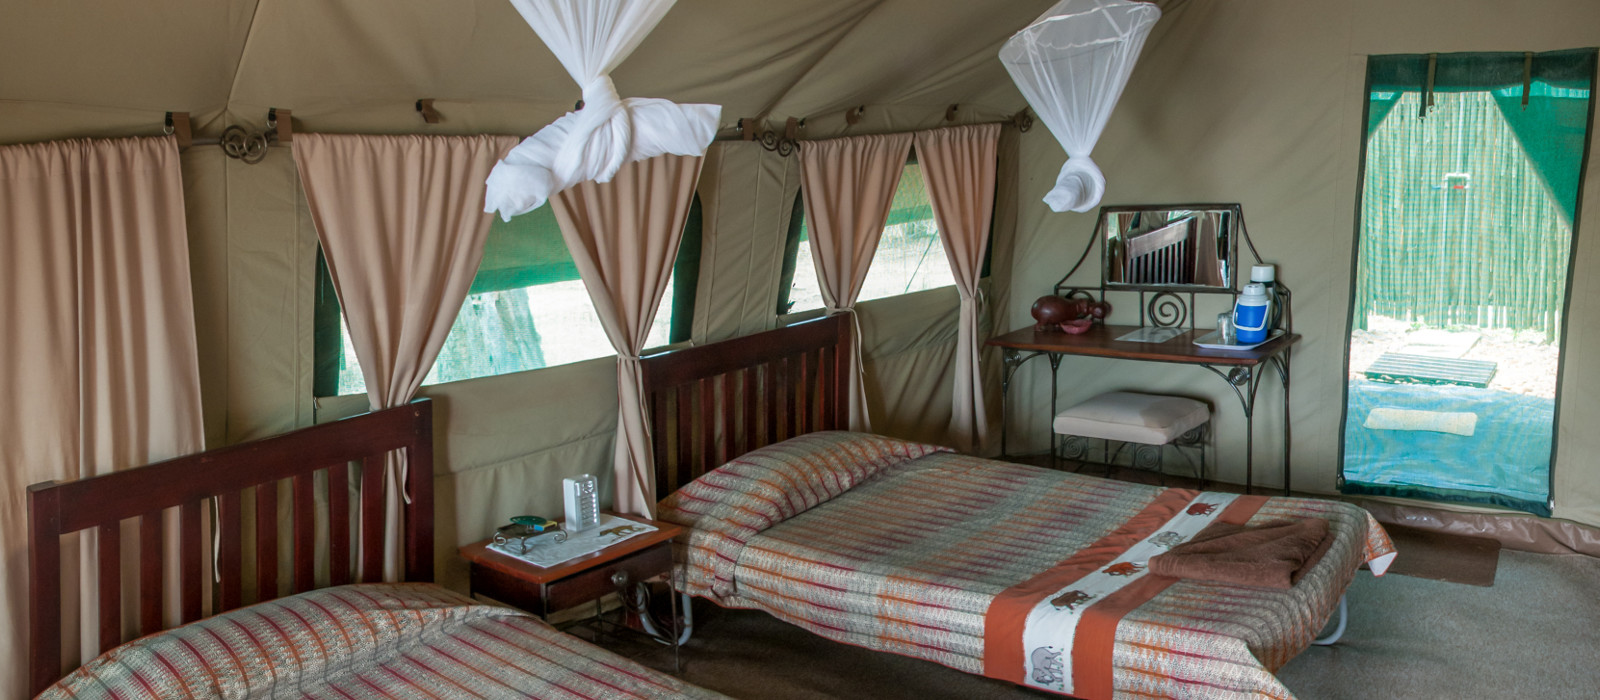 Hotel Goliath Safaris Luxury Tented Camp Zimbabwe